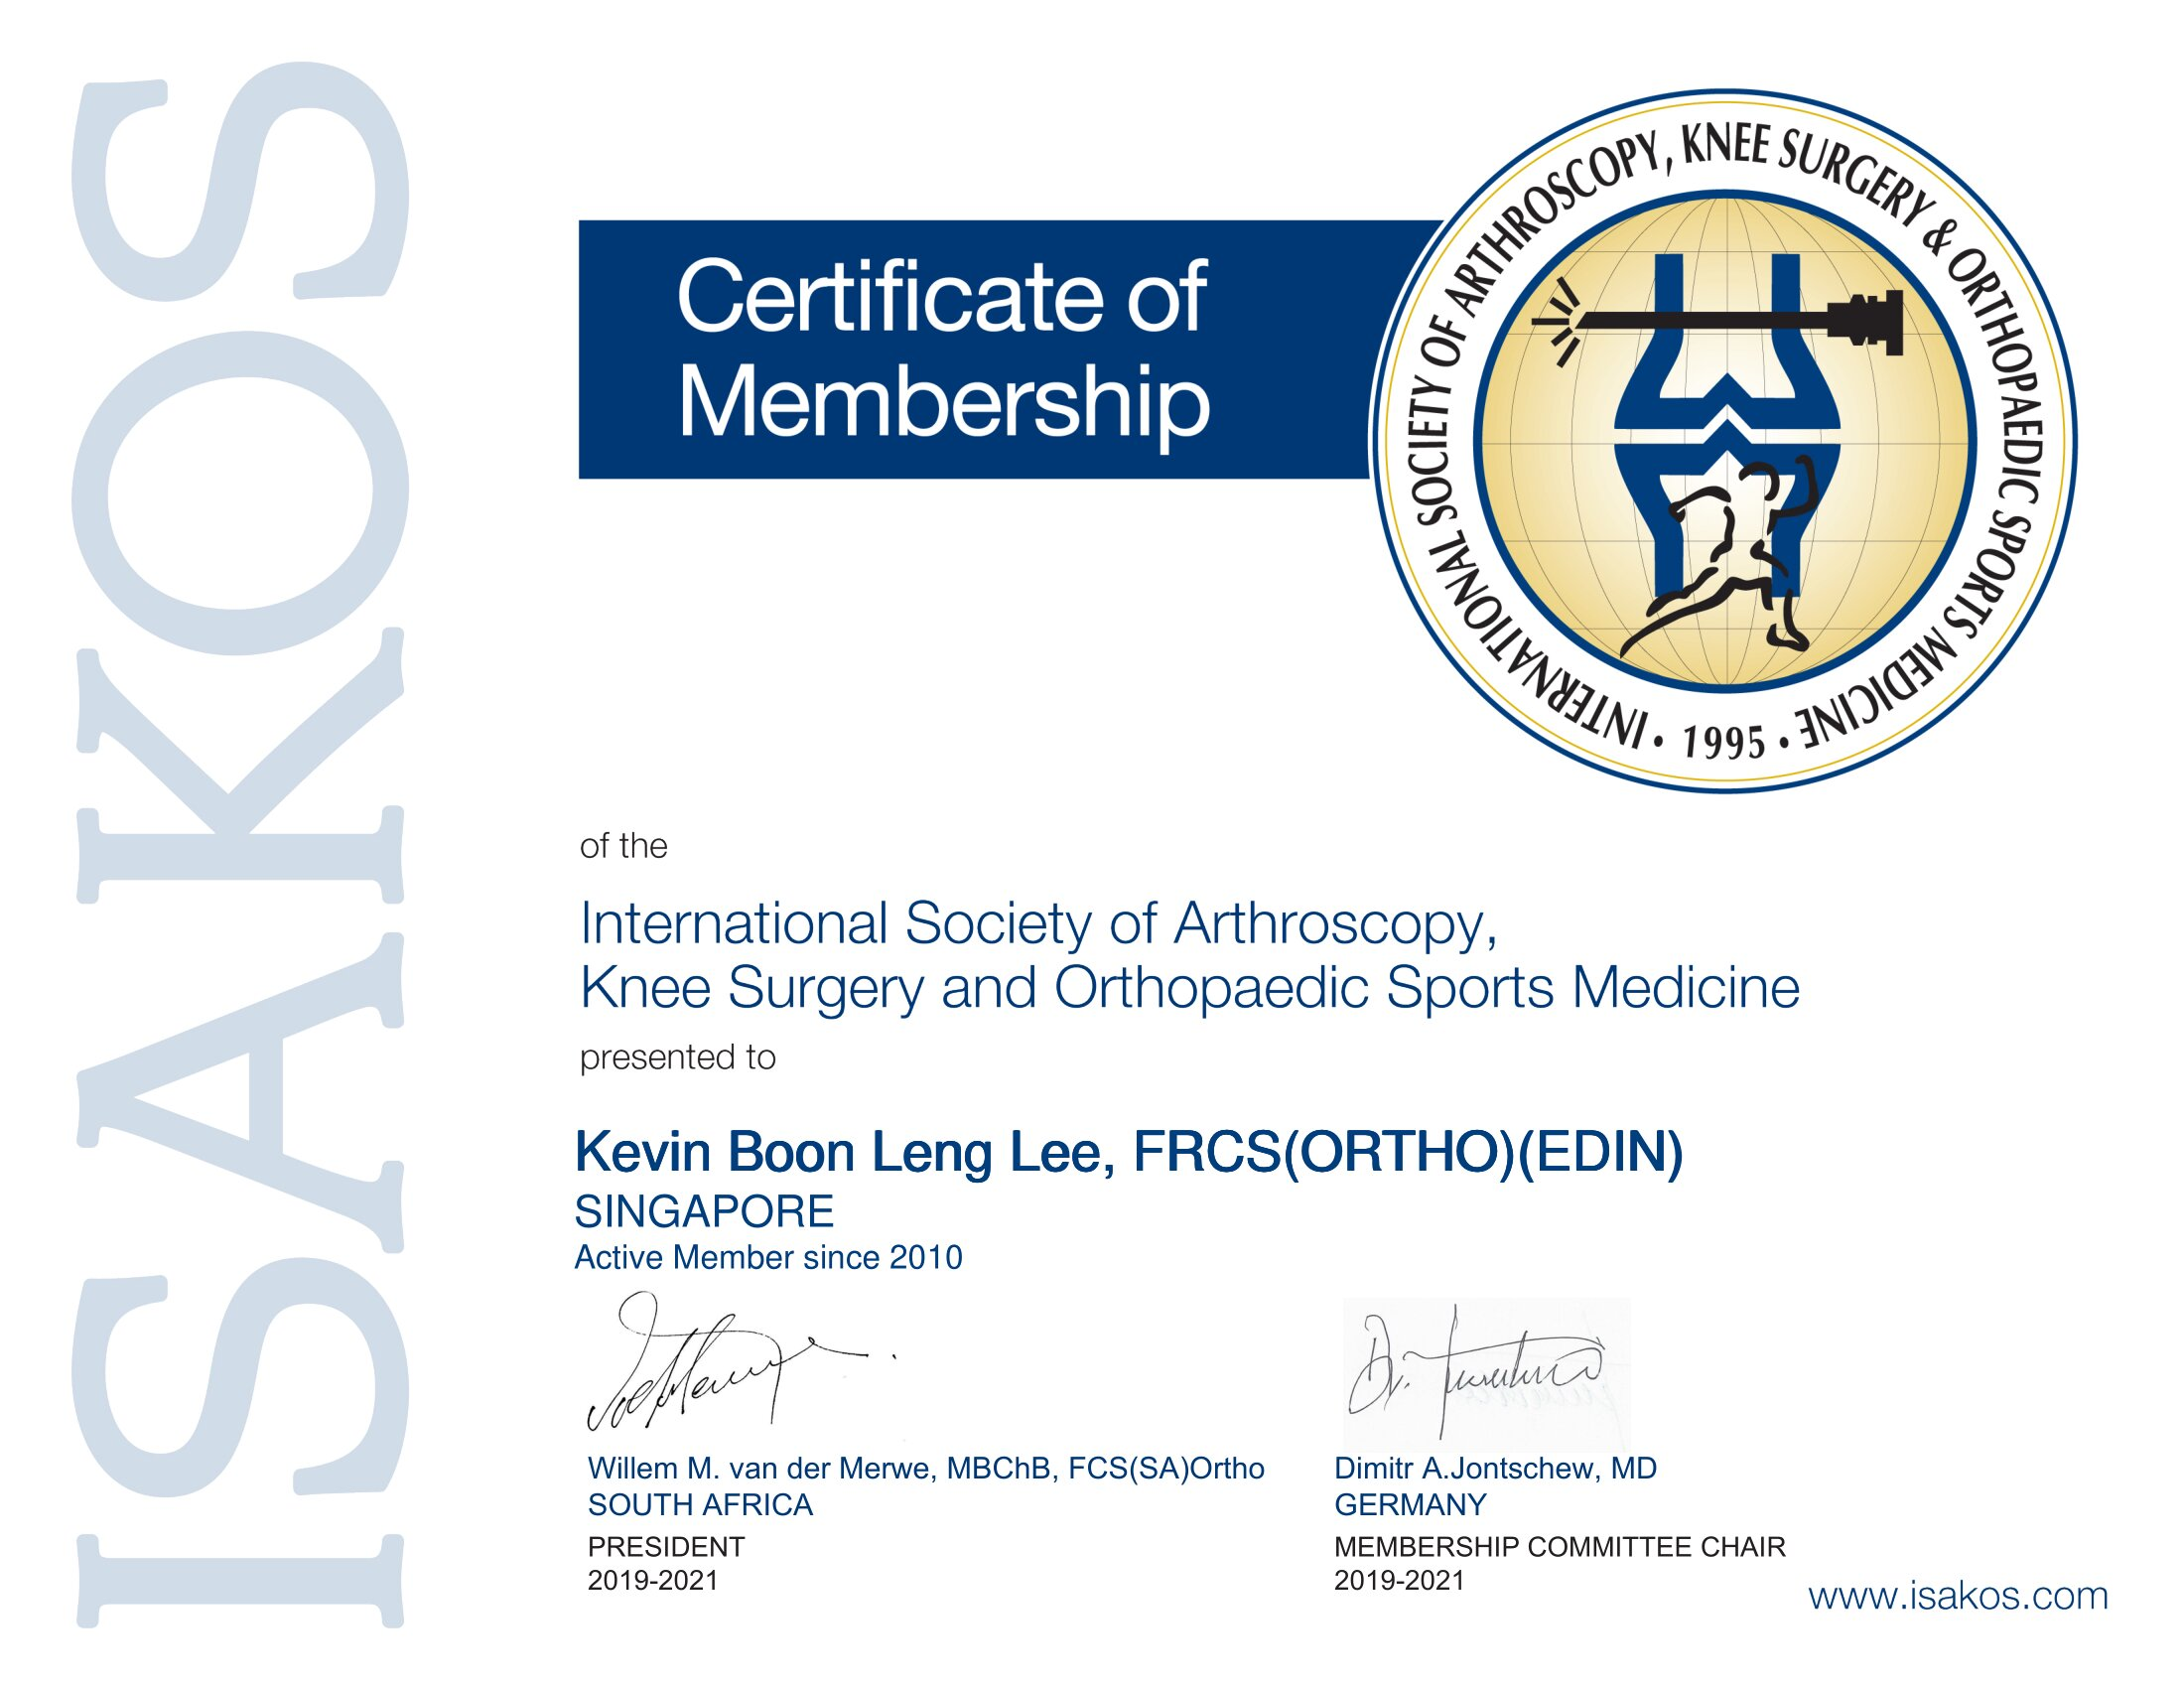 Dr Kevin Lee is a member of ISAKOS